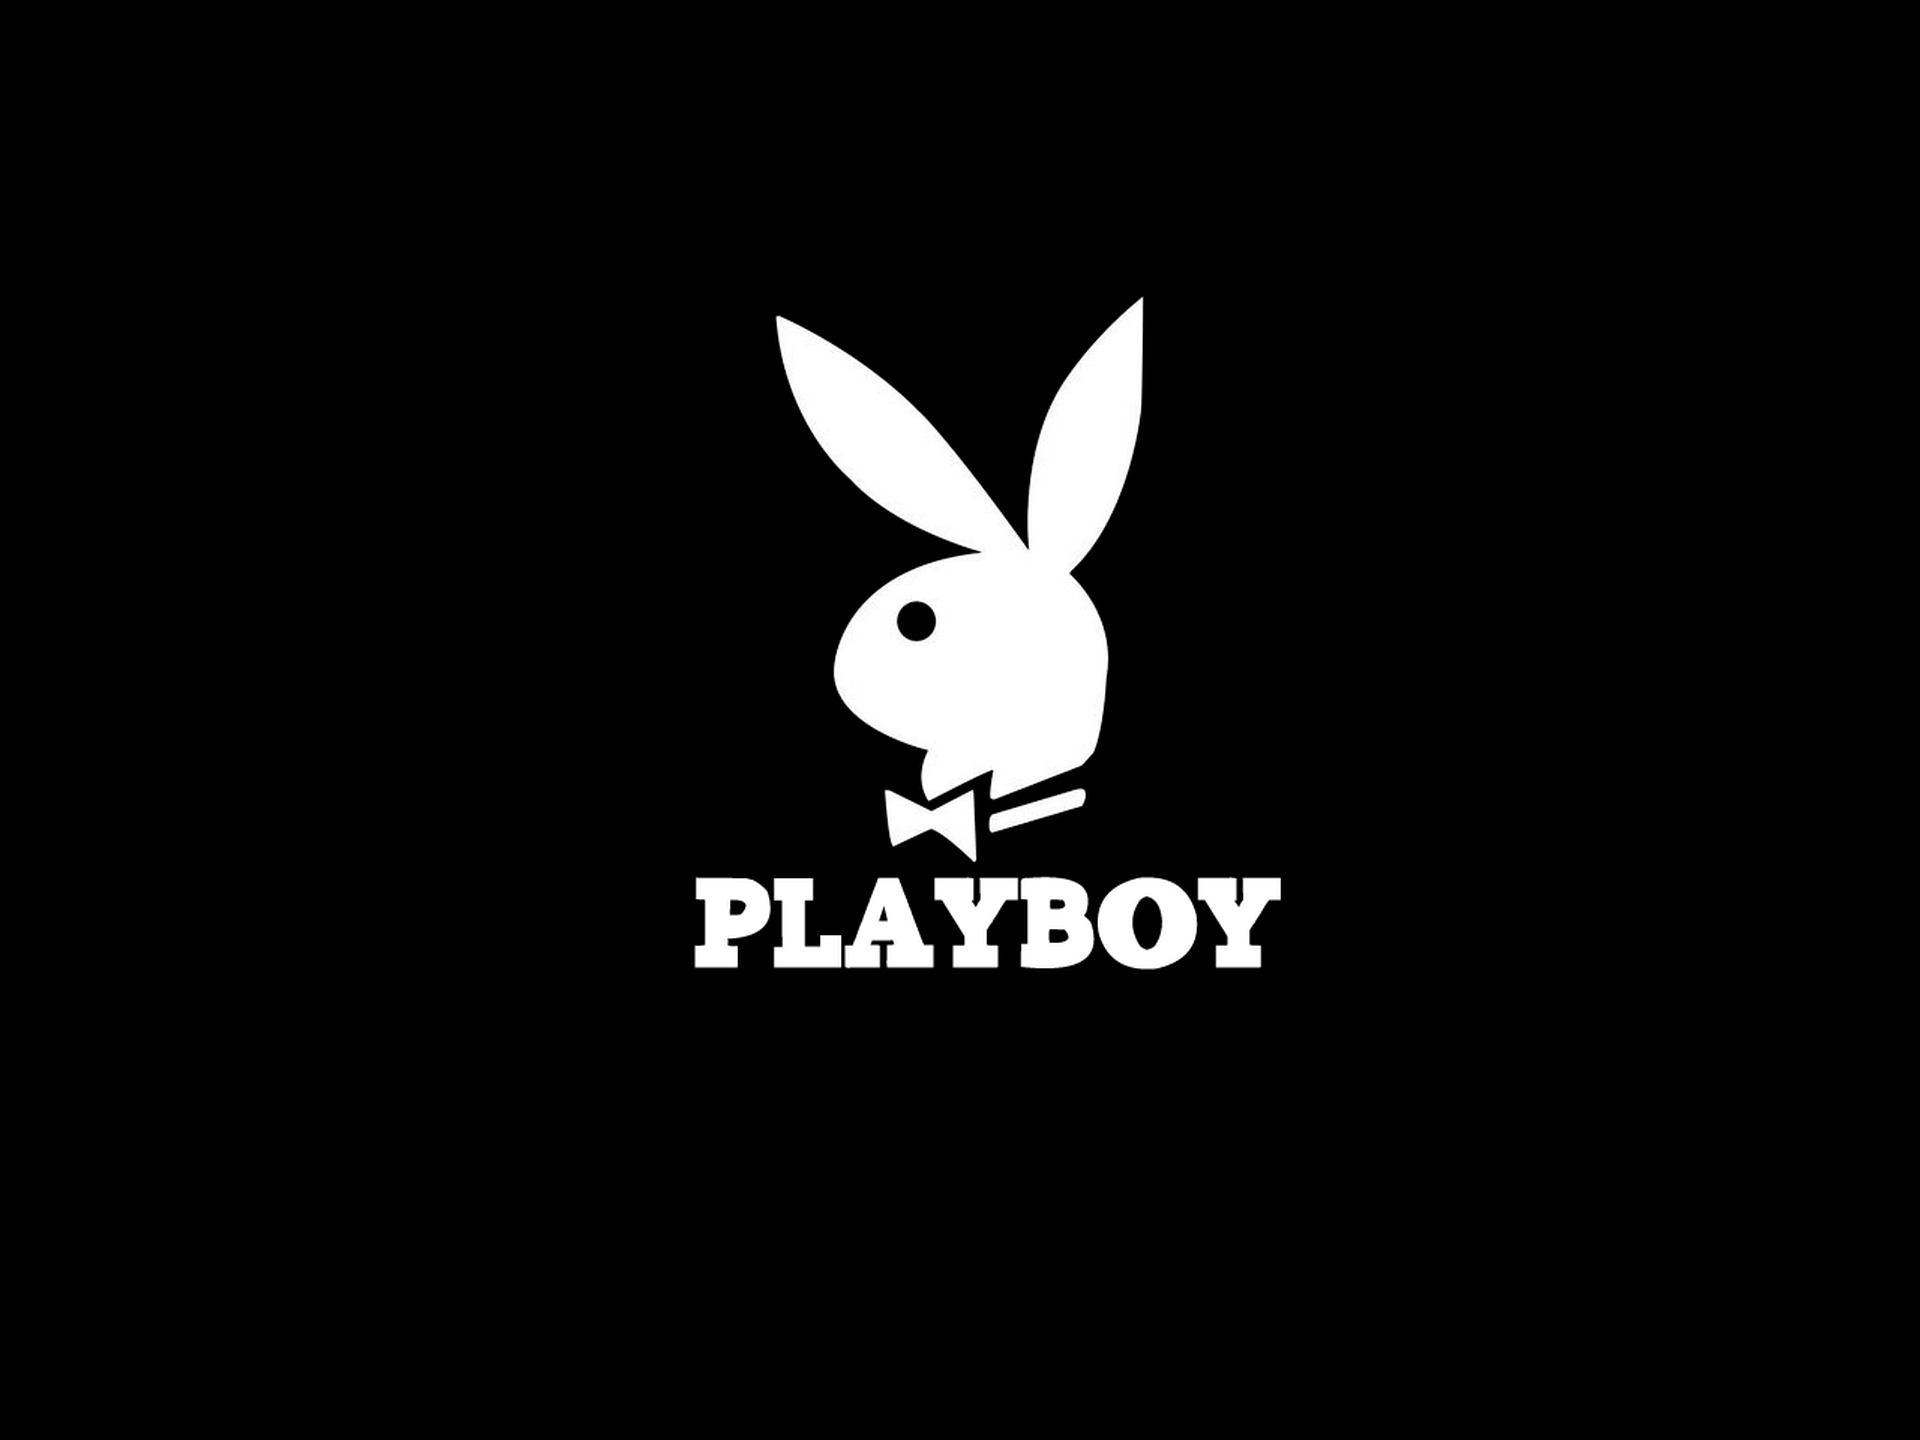 Playboy bunny icon